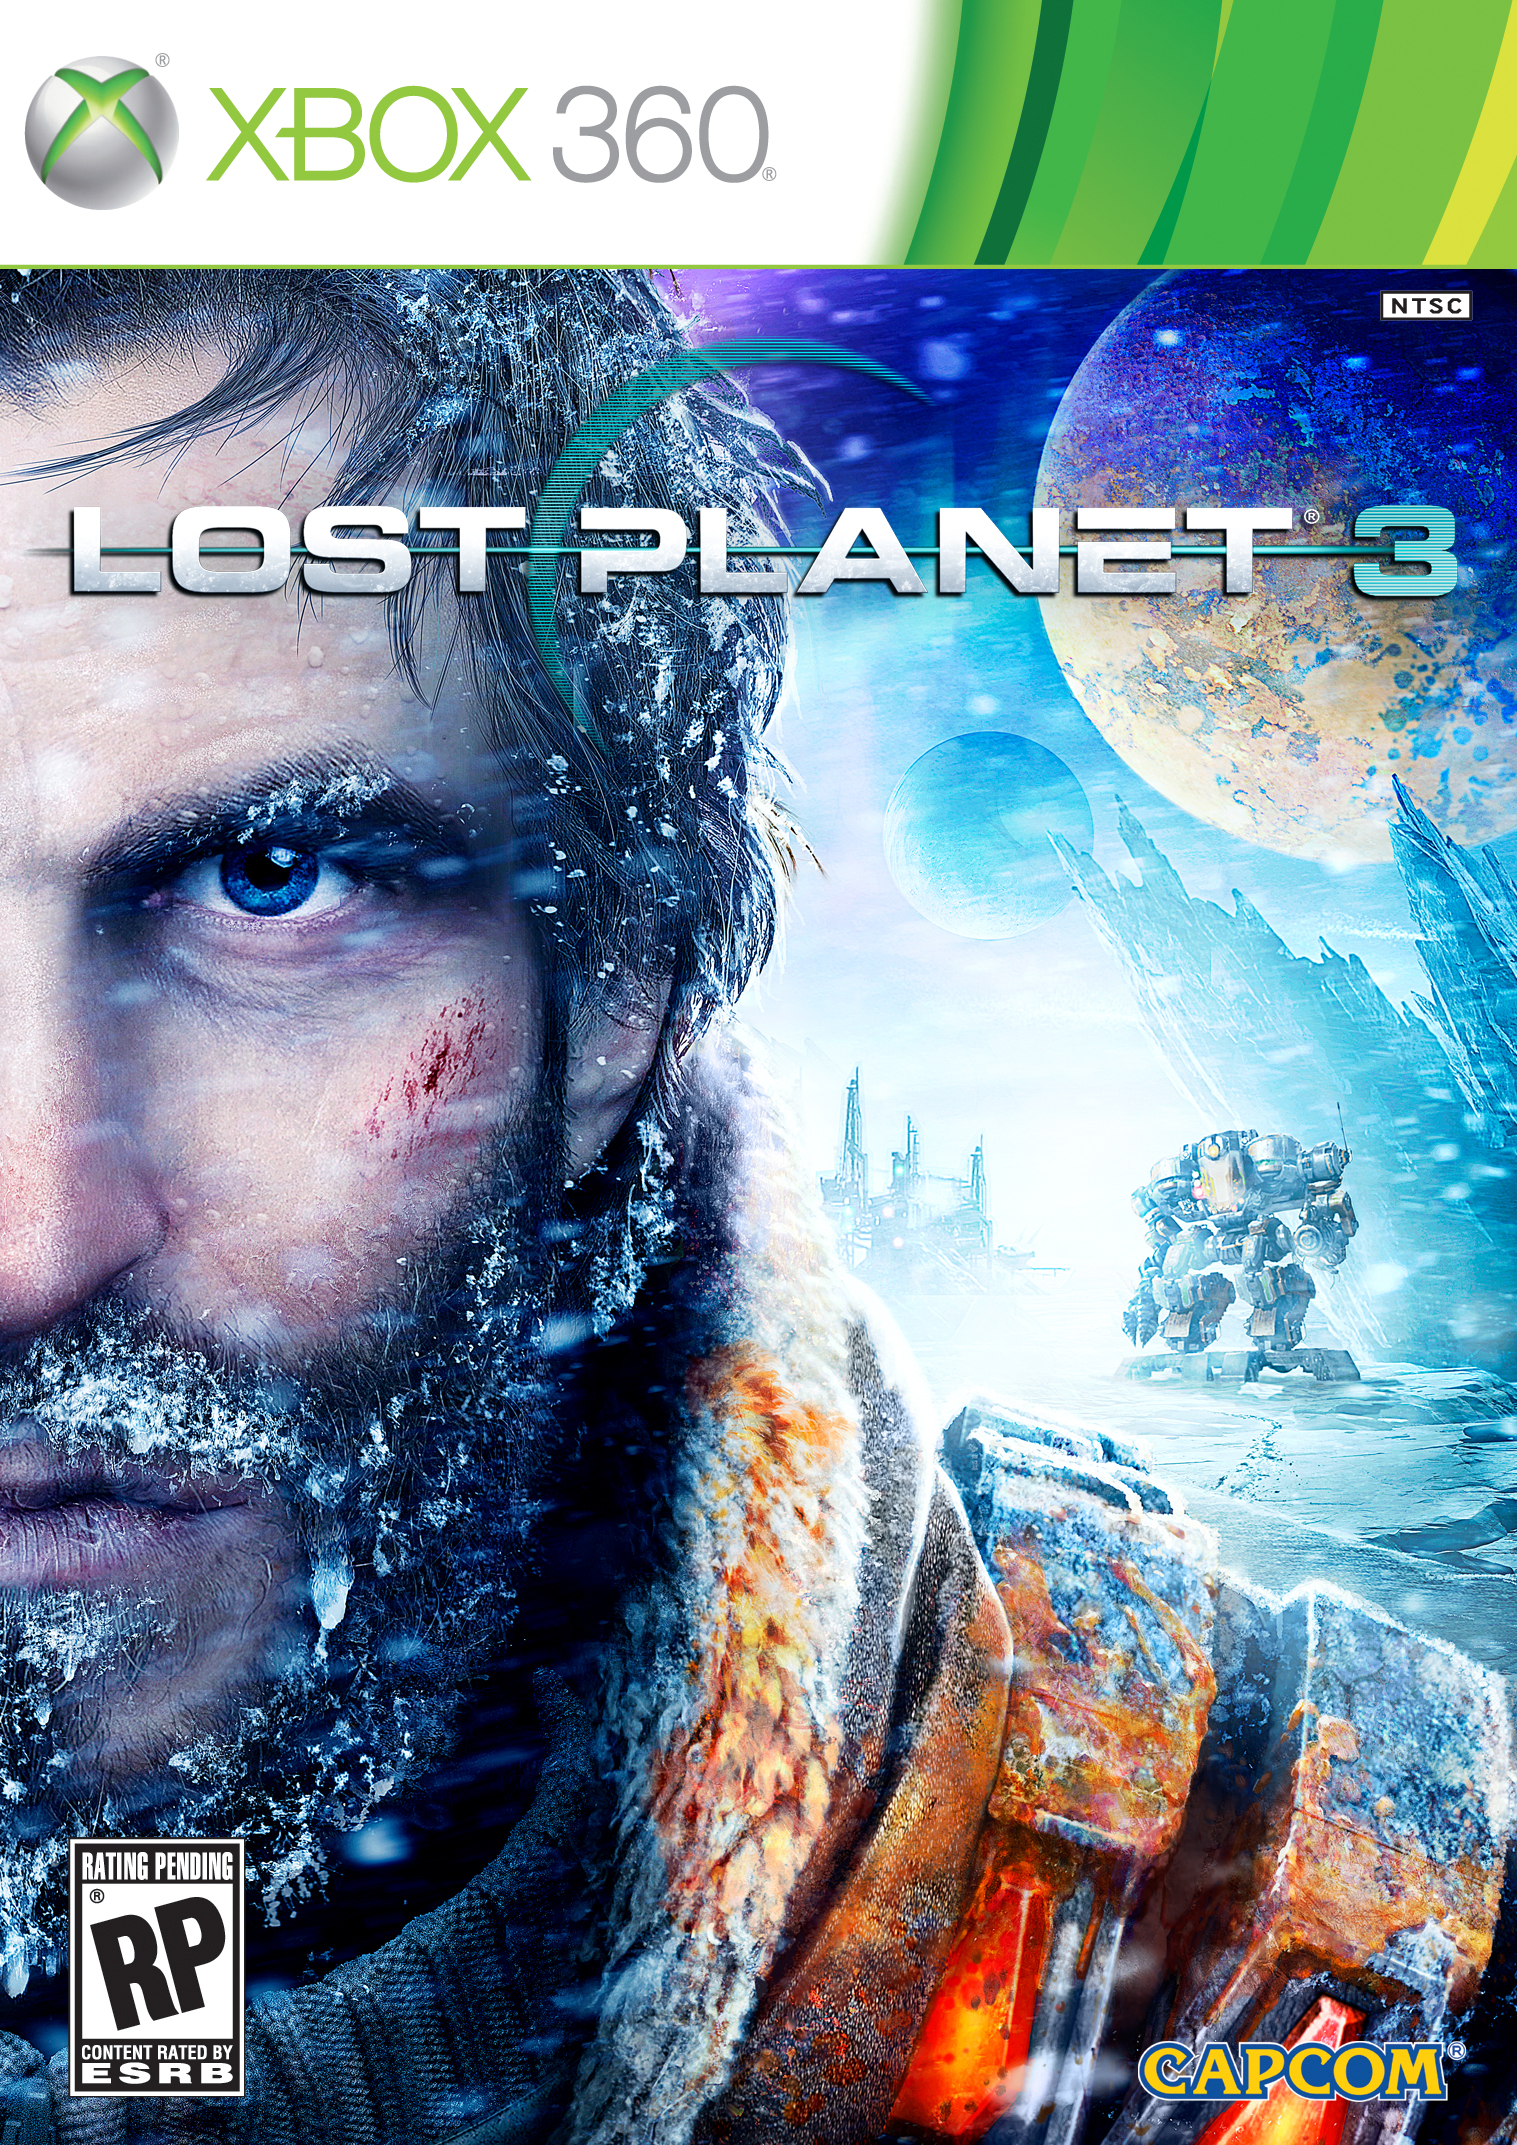 Lost Planet 3 Release Date, Box Art, Trailer and Screenshots 360 Cover